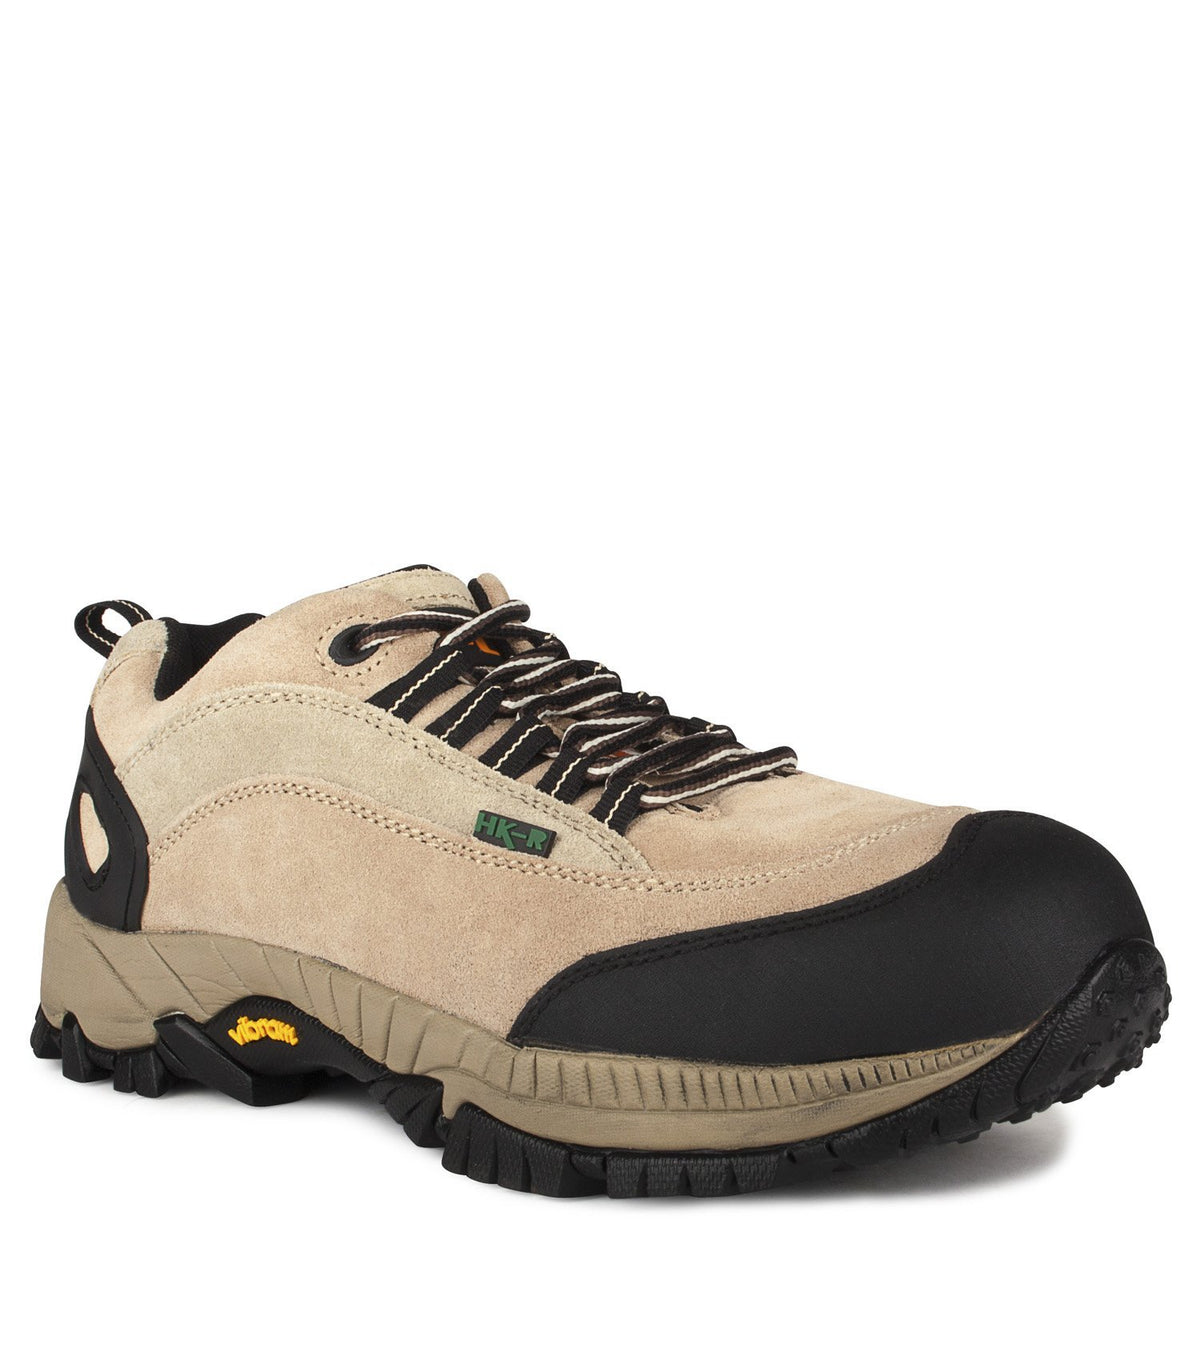 STC Bruce Safety Shoes | Beige | Sizes 7 - 13 Work Boots - Cleanflow